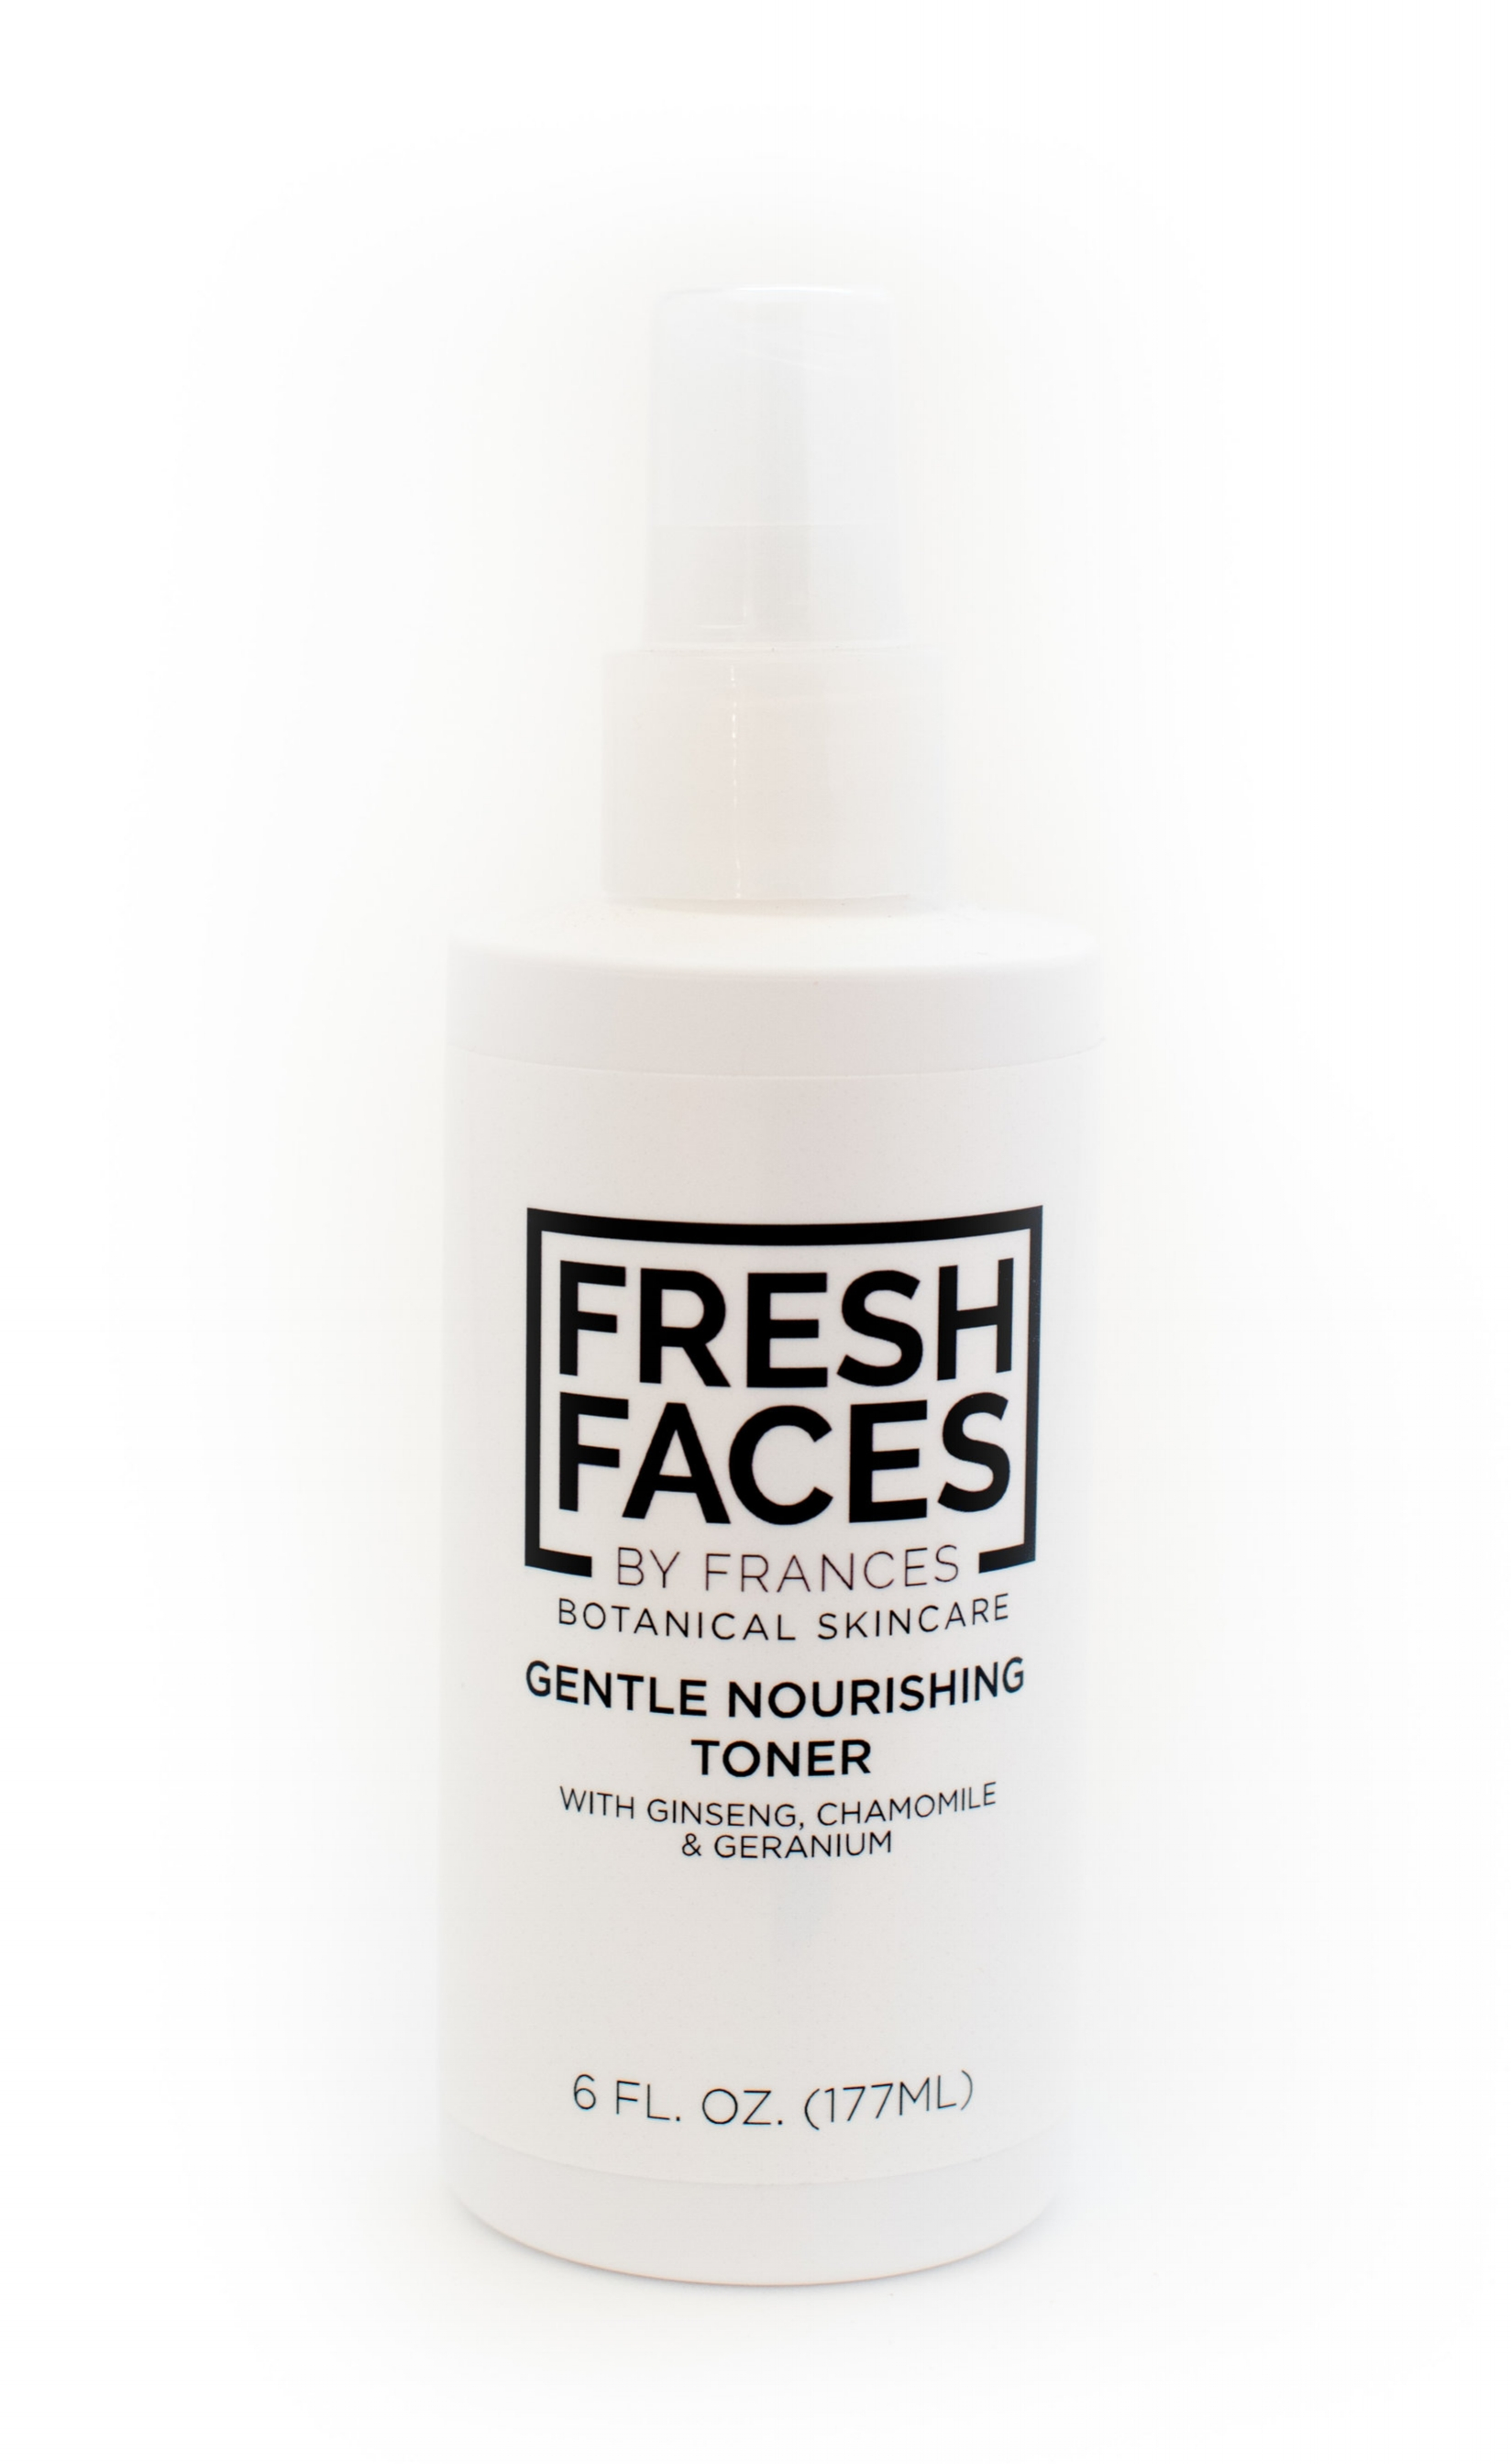 Gentle Nourishing Toner